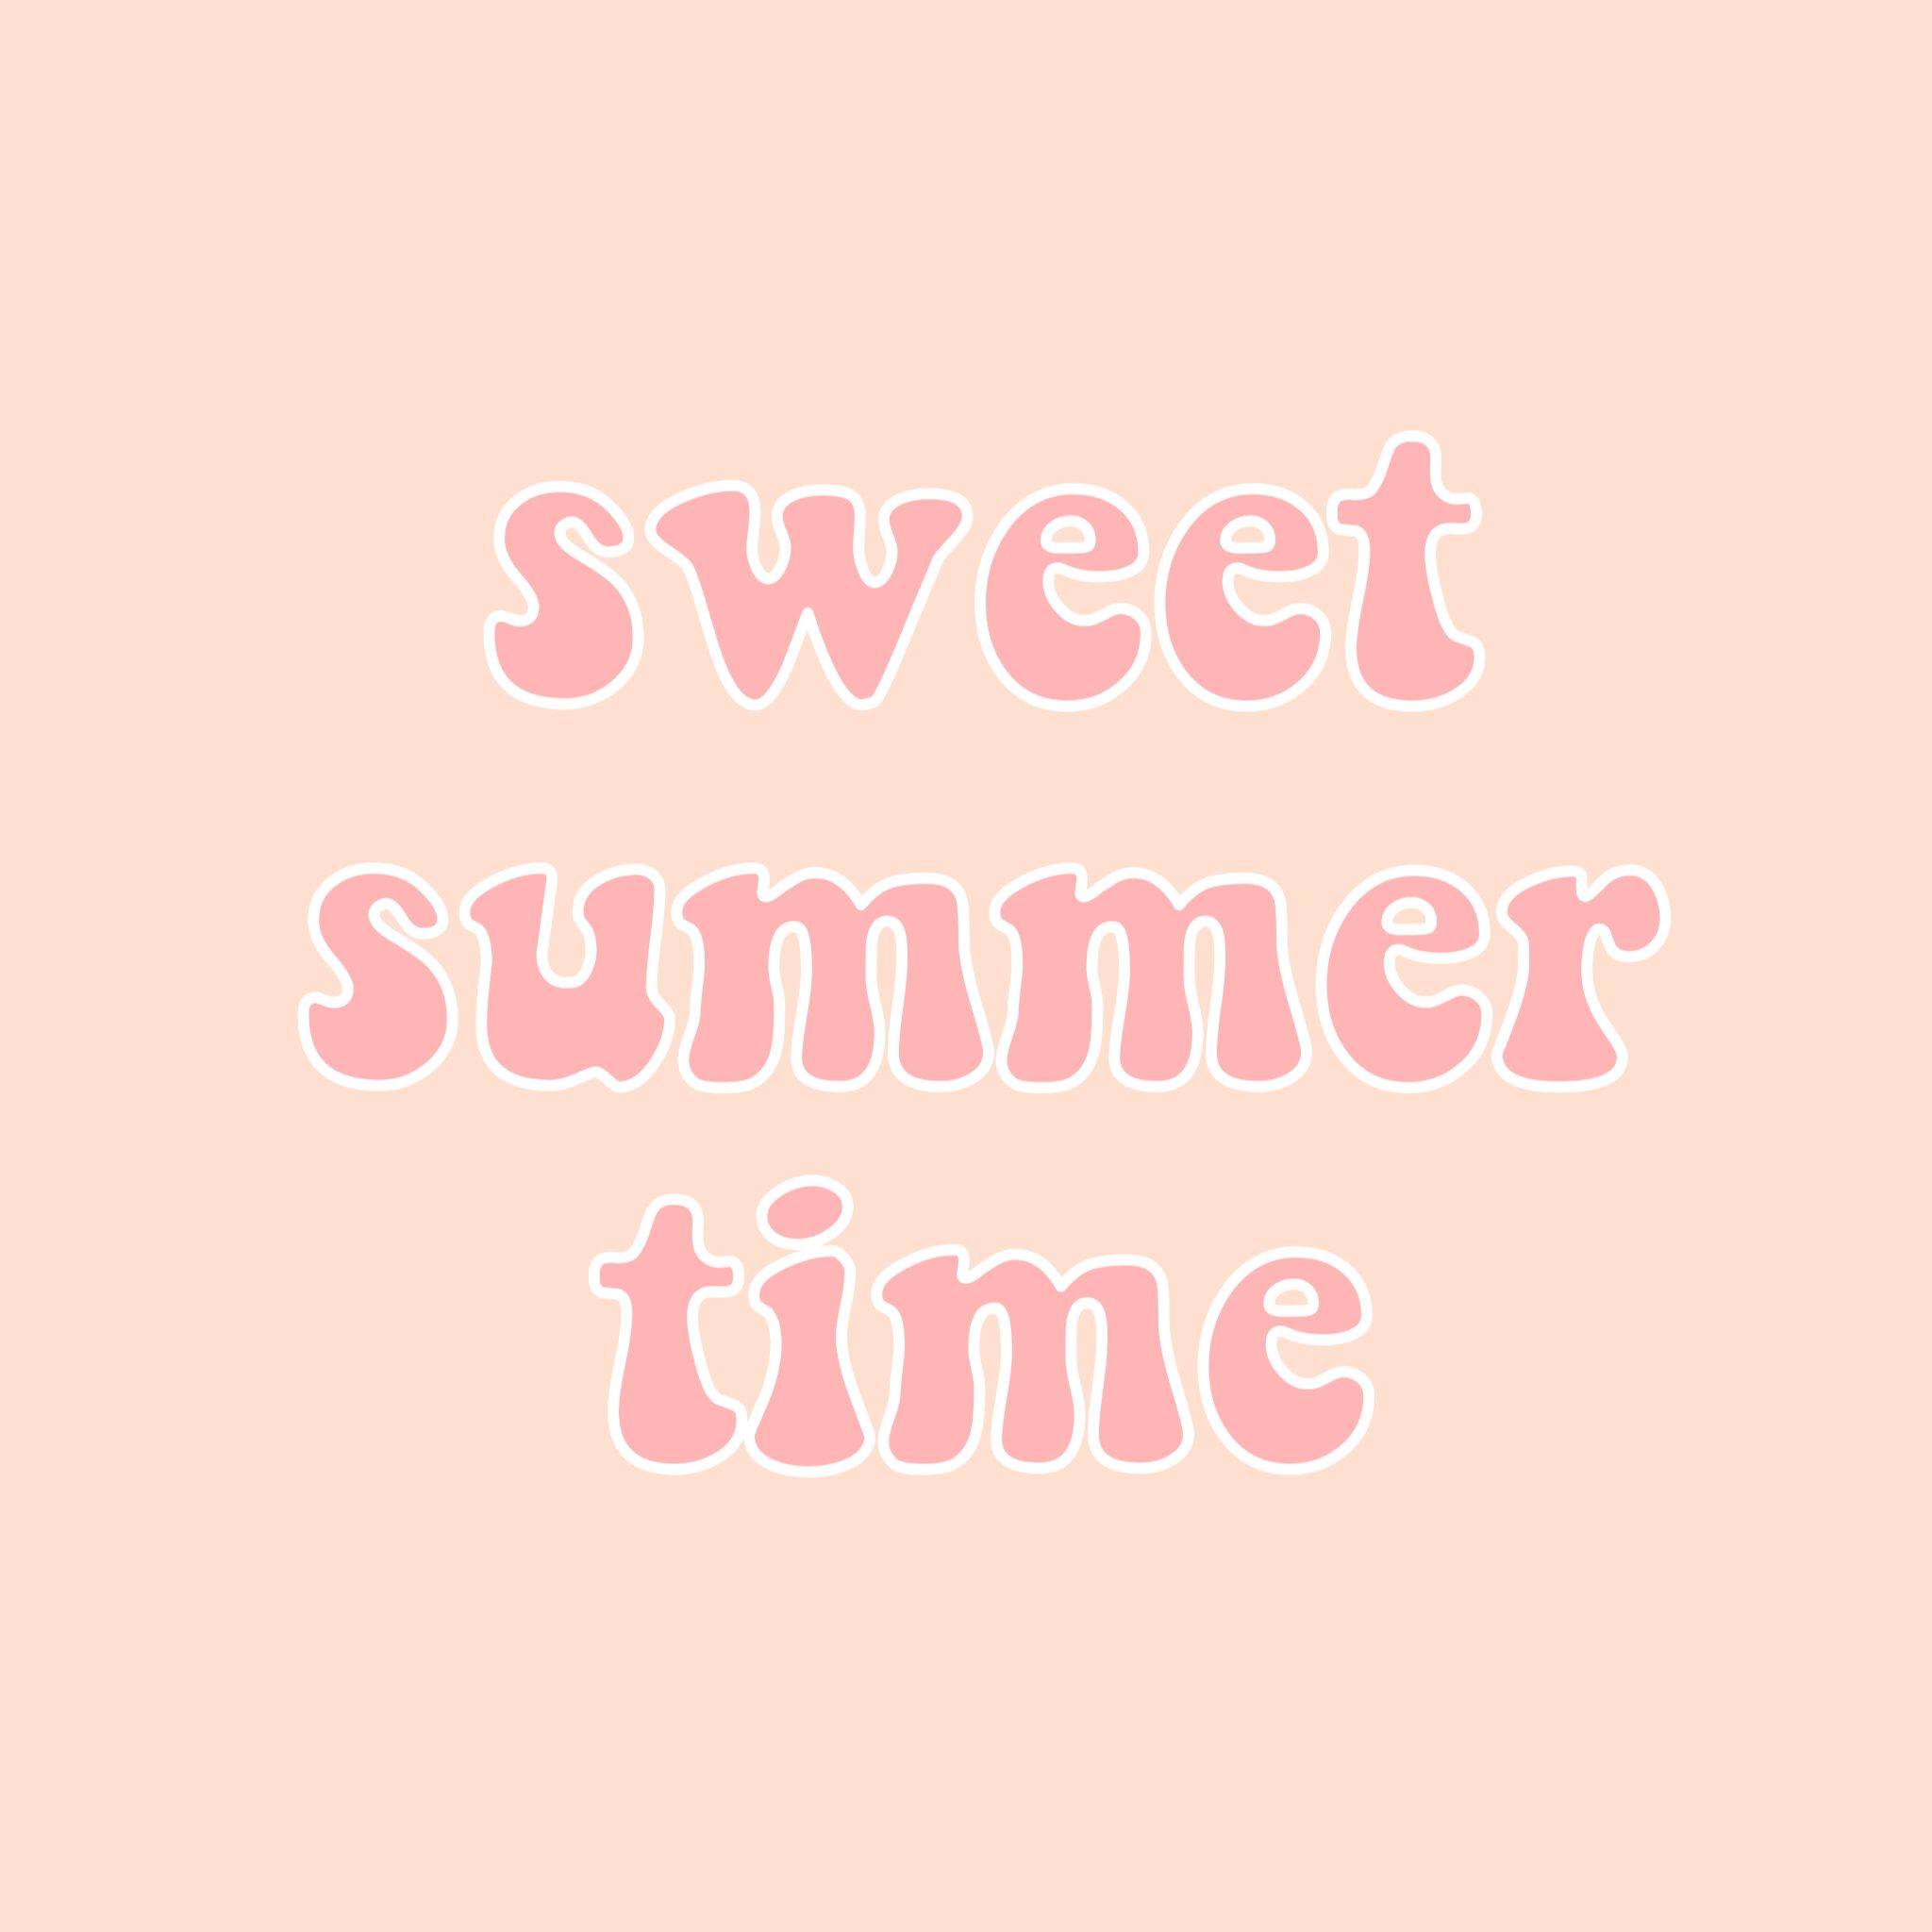 Sweet Summer Time Quotes Words Pink Aesthetic Tumblr Vsco Iphone